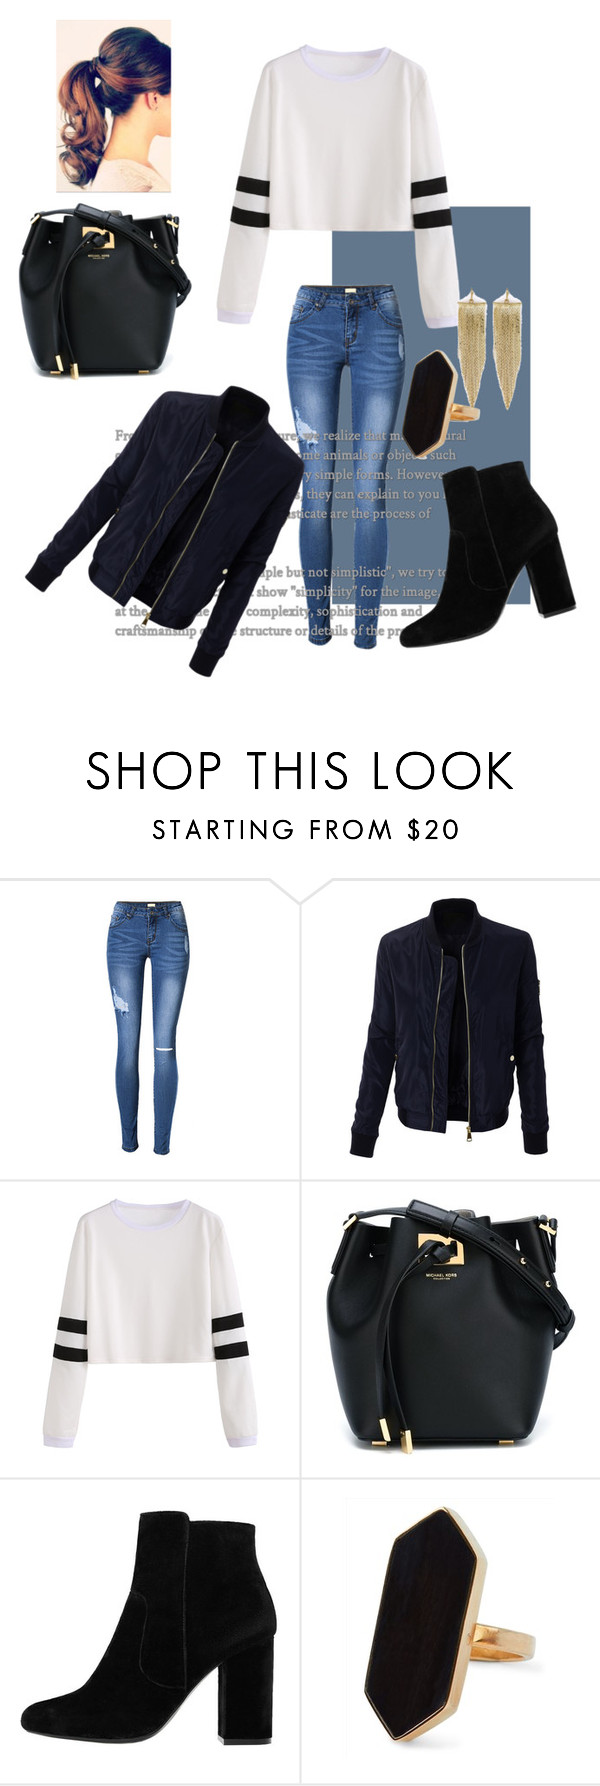 """""""Untitled #29"""" by zsofisalloi ❤ liked on Polyvore featuring LE3NO, Michael Kors, MANGO, Jaeger and Kenneth Jay Lane"""